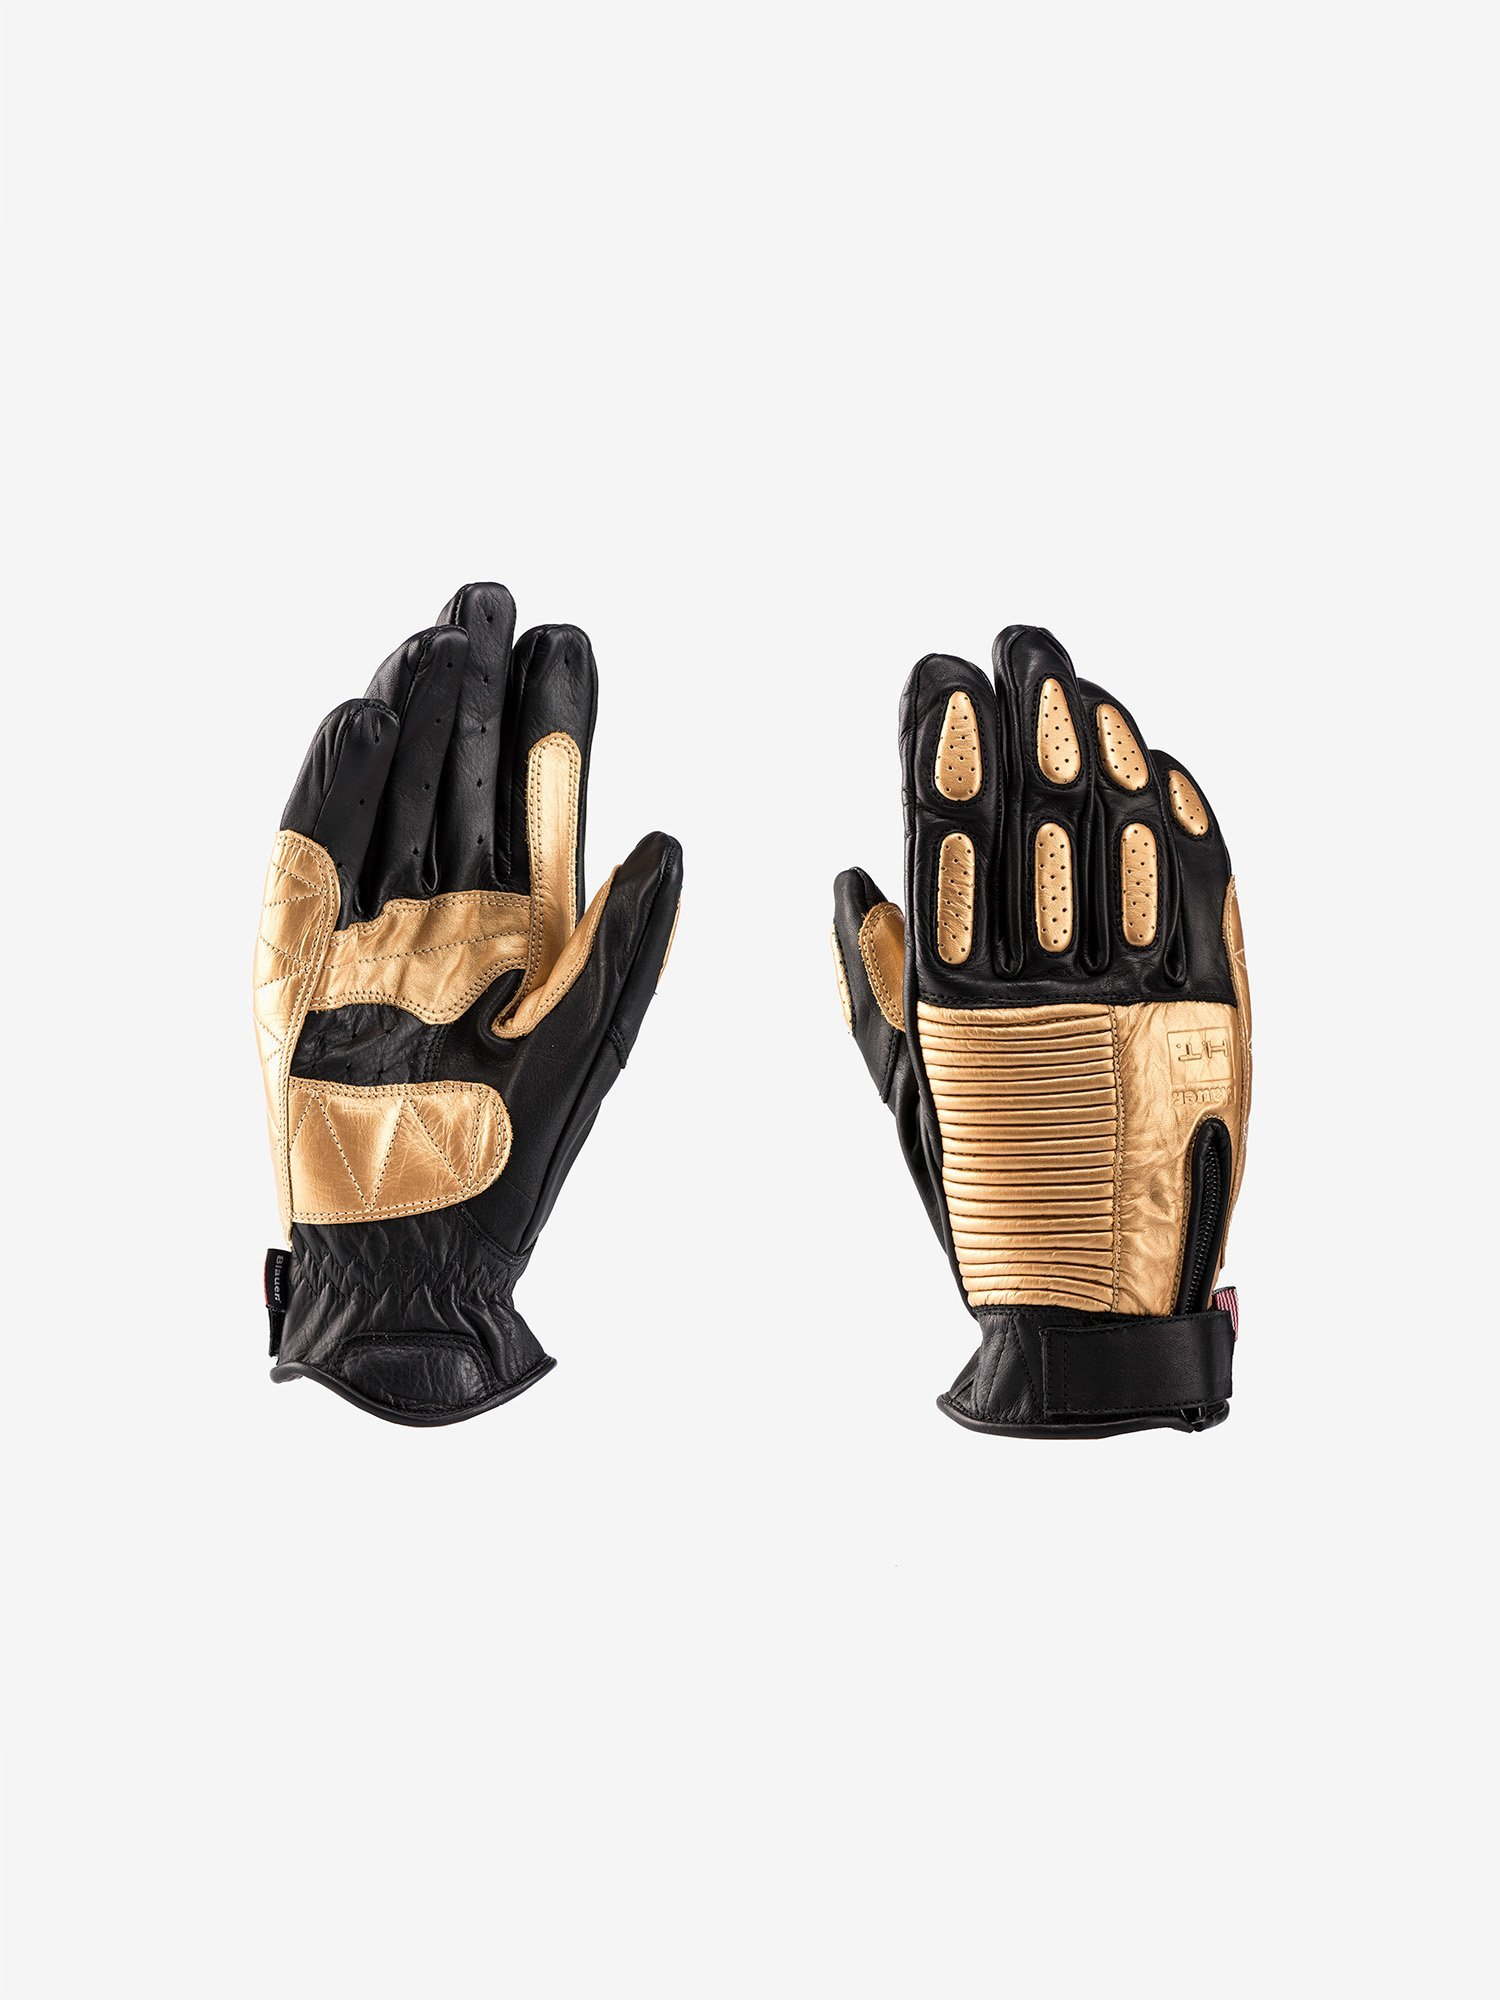 Blauer - BANNER MOTORCYCLE GLOVES - Black / Gold - Blauer